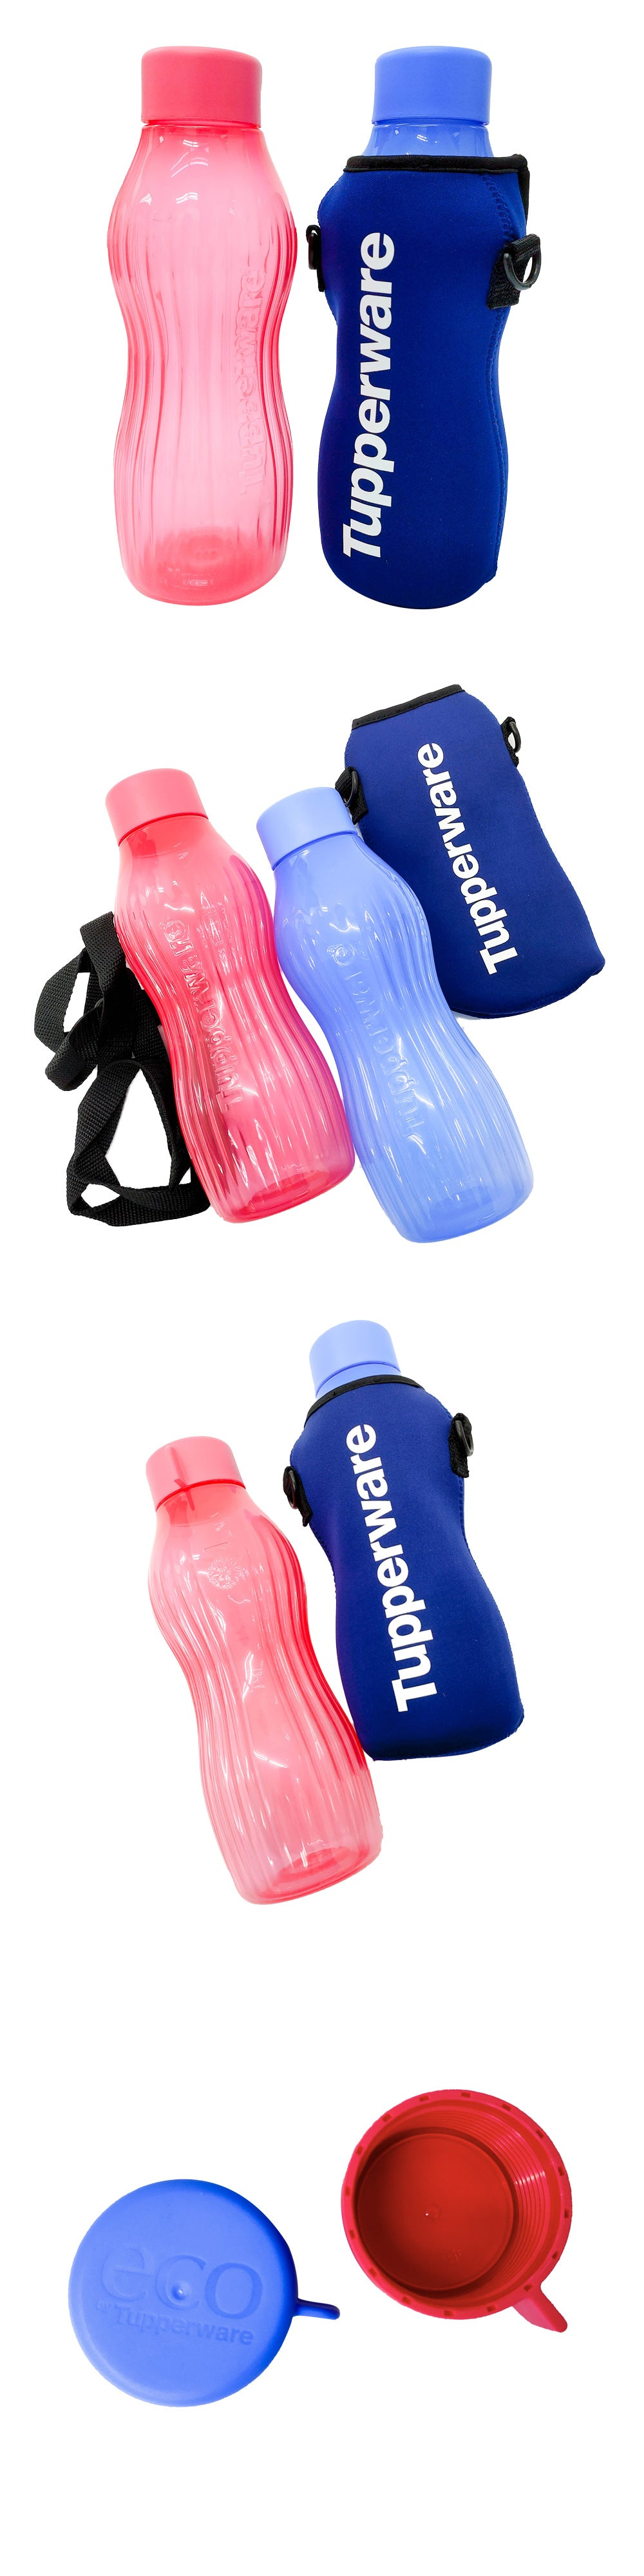 Tupperware Xtreme Aqua Freezer Proof Bottles with Pouch - Red/Blue